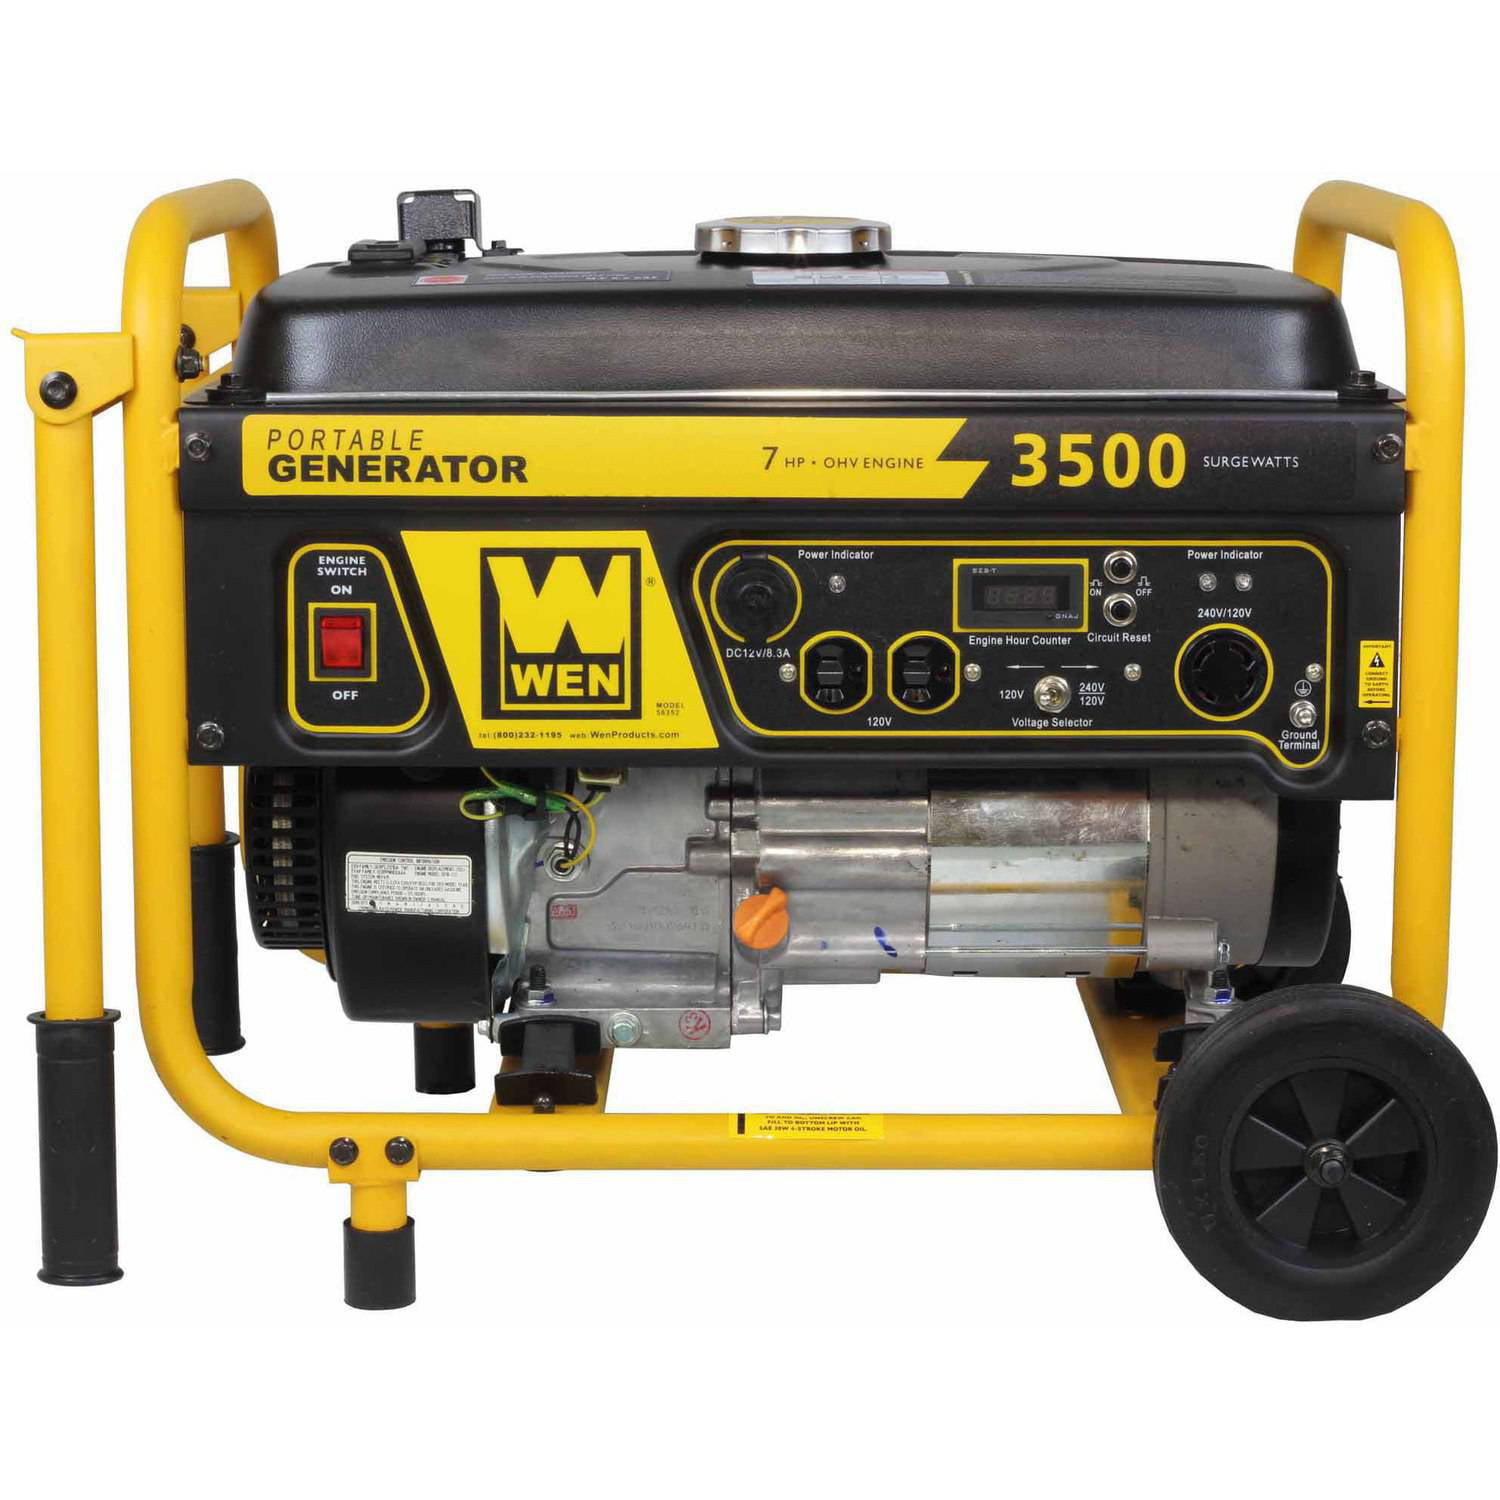 WEN 3500 Watt 212cc Portable Generator with Wheel Kit